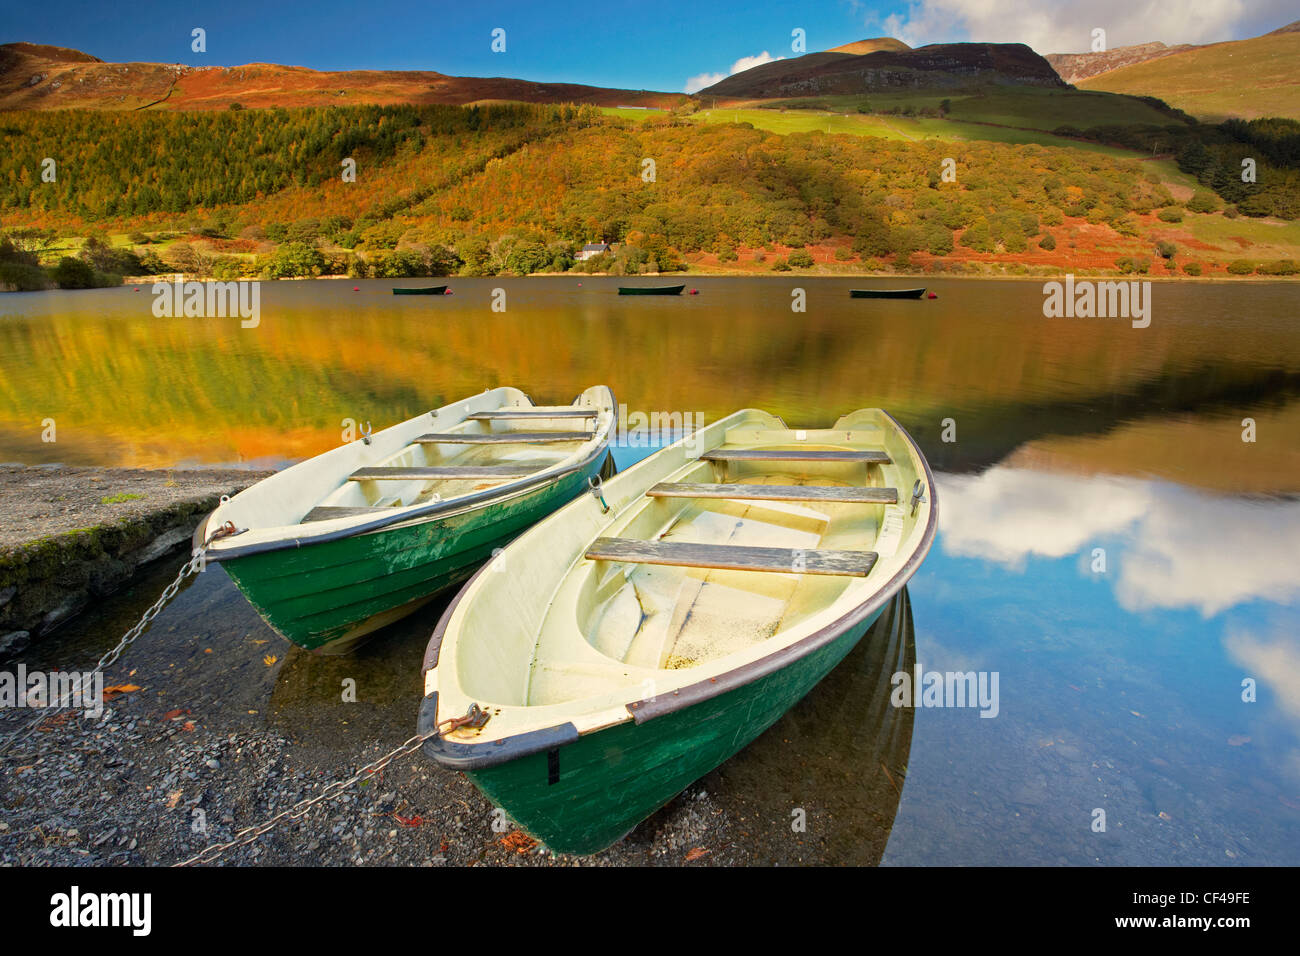 Fishing boats on Tal Y Llyn lake in Snowdonia. - Stock Image